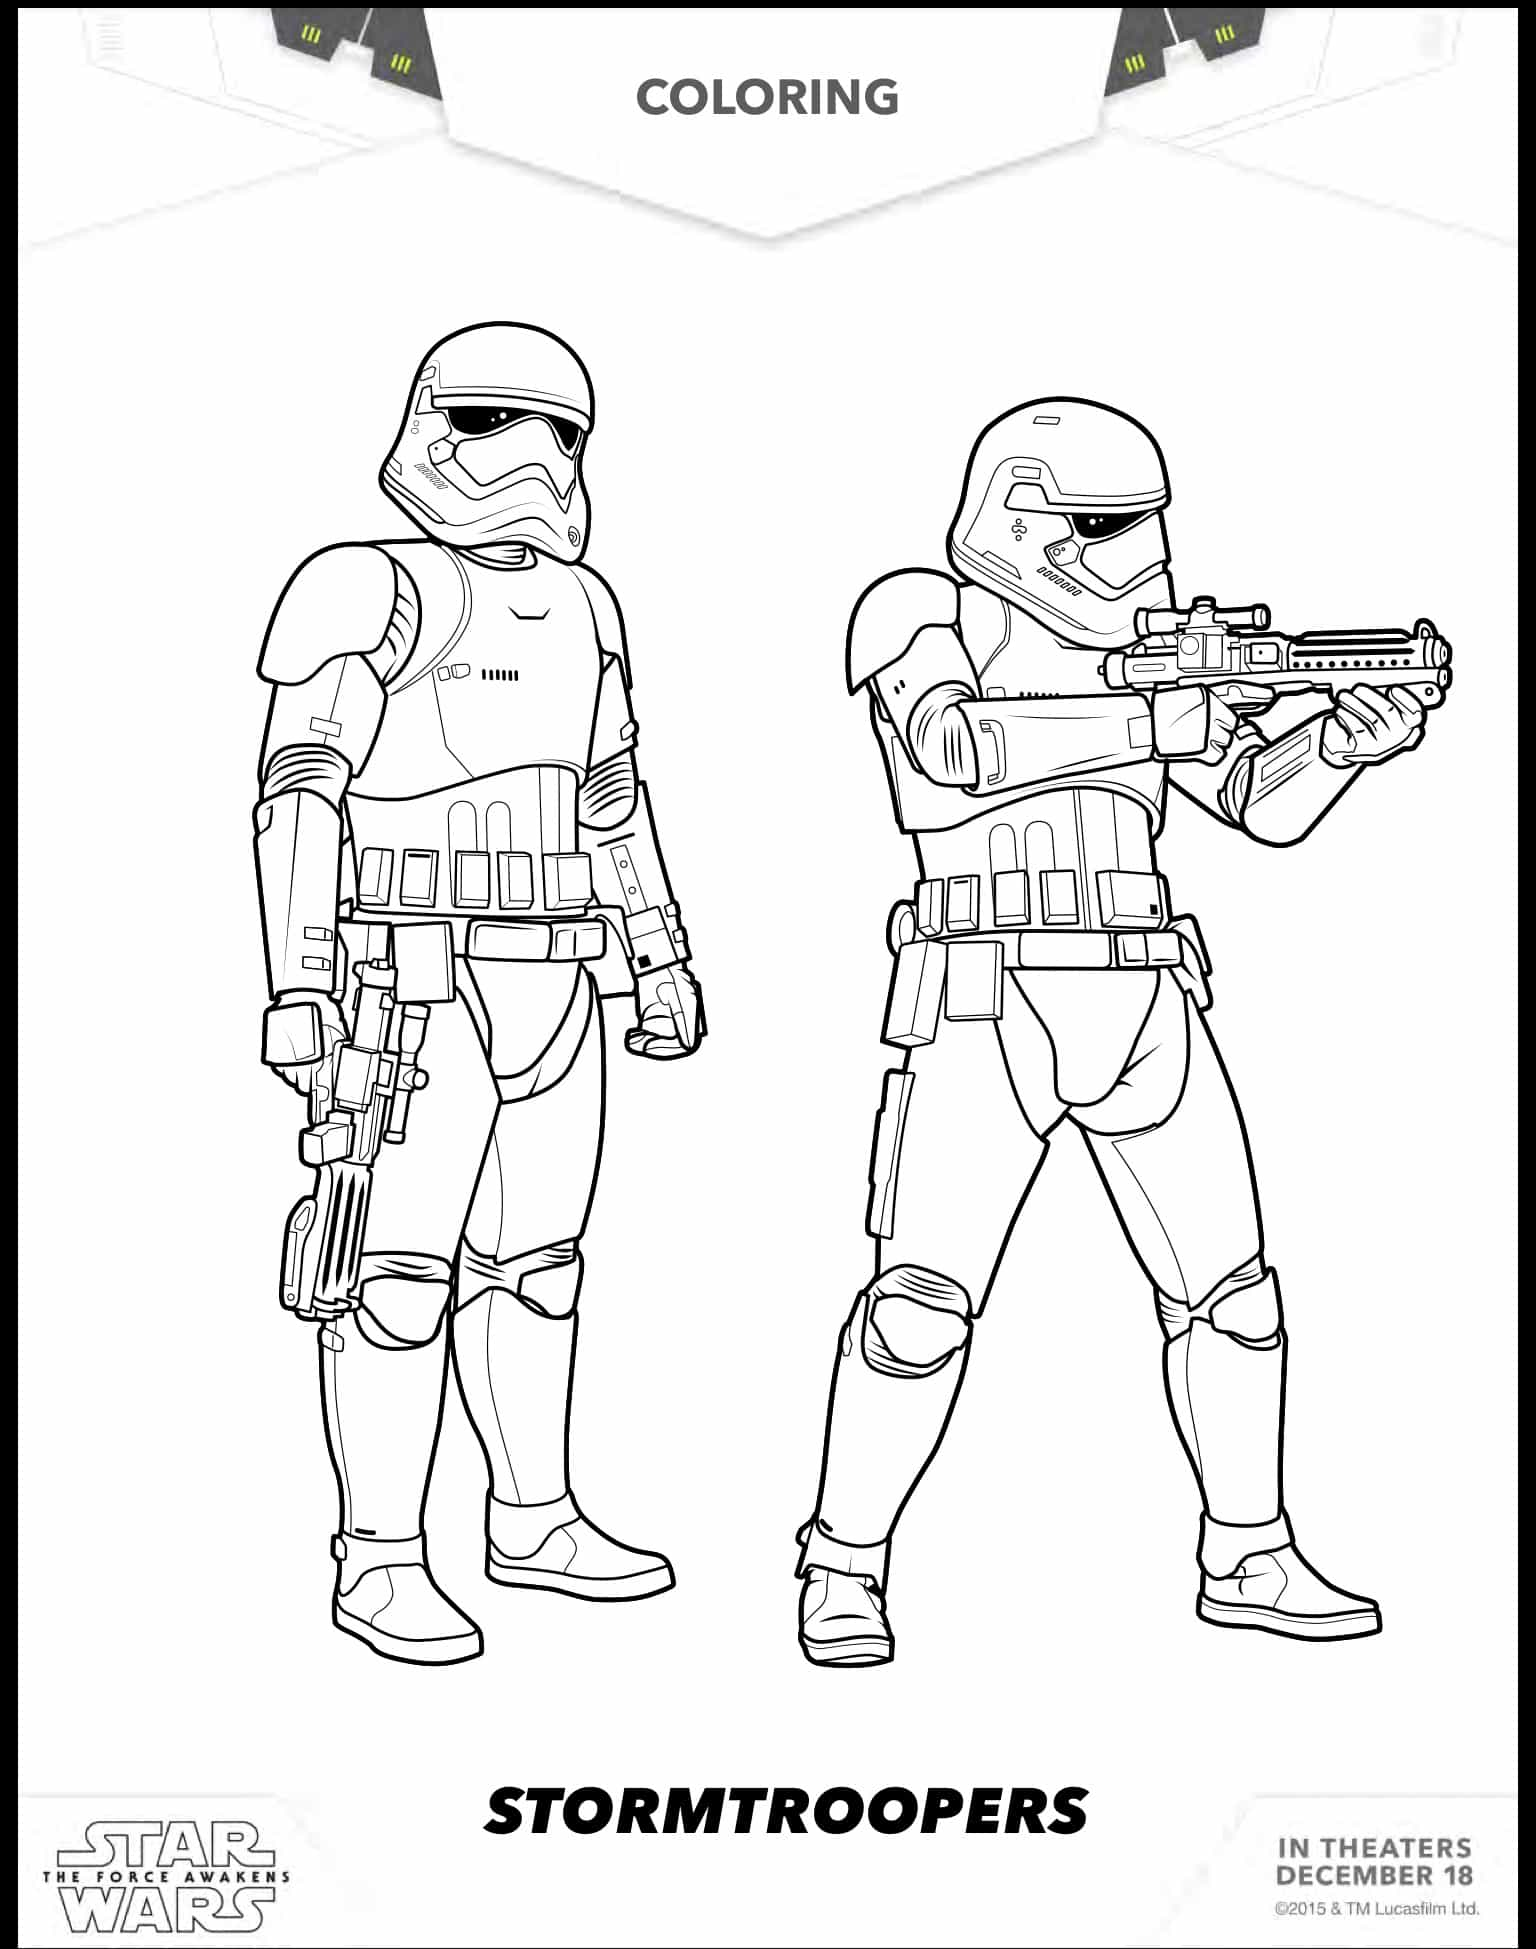 star wars print out coloring pages cool star wars the force awakens stormtrooper coloring pages star out wars coloring print